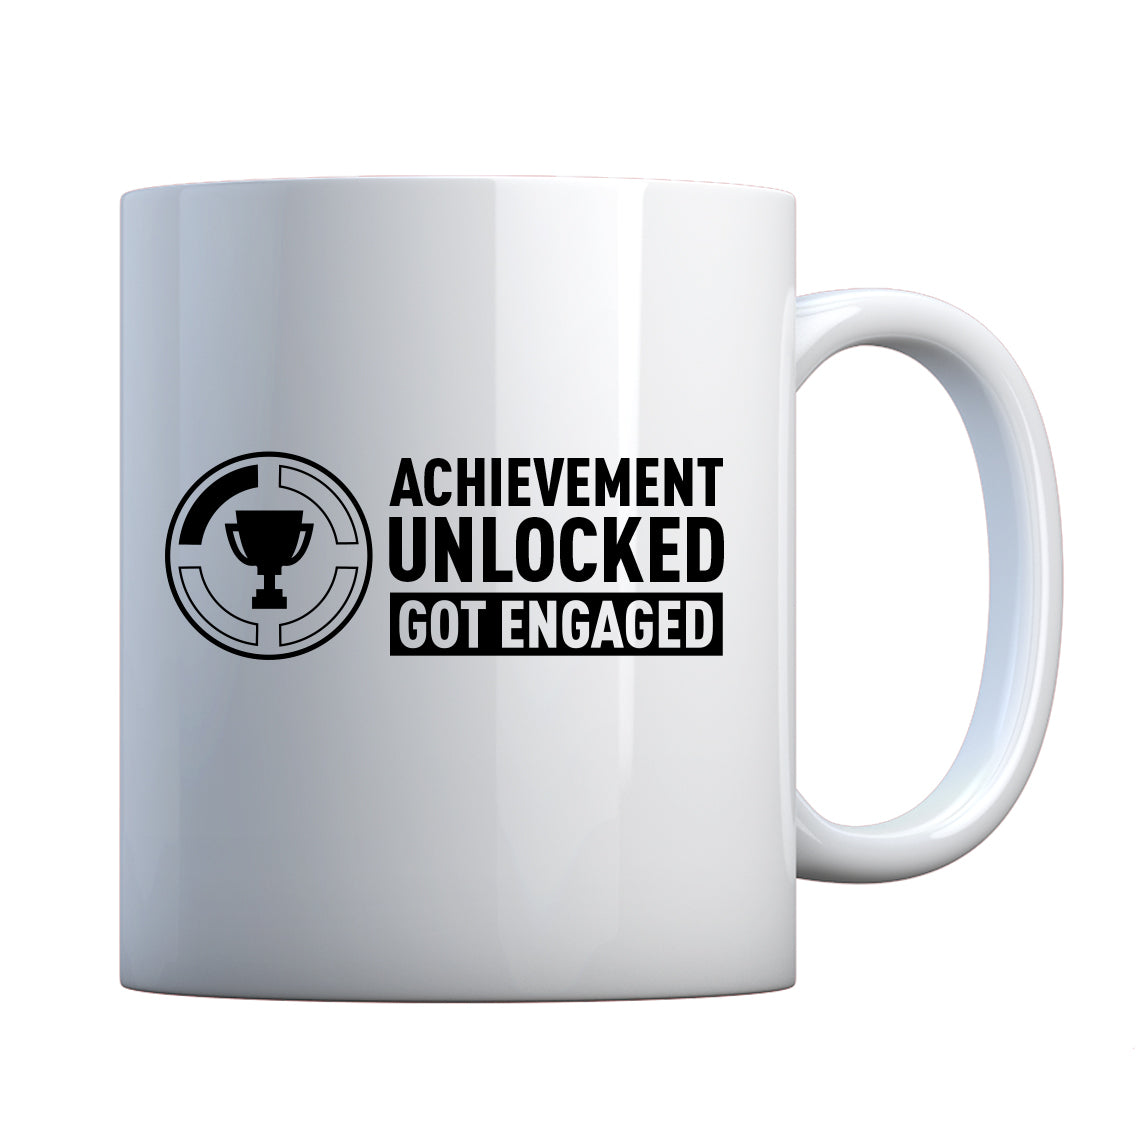 Achievement Unlocked Got Engaged Ceramic Gift Mug